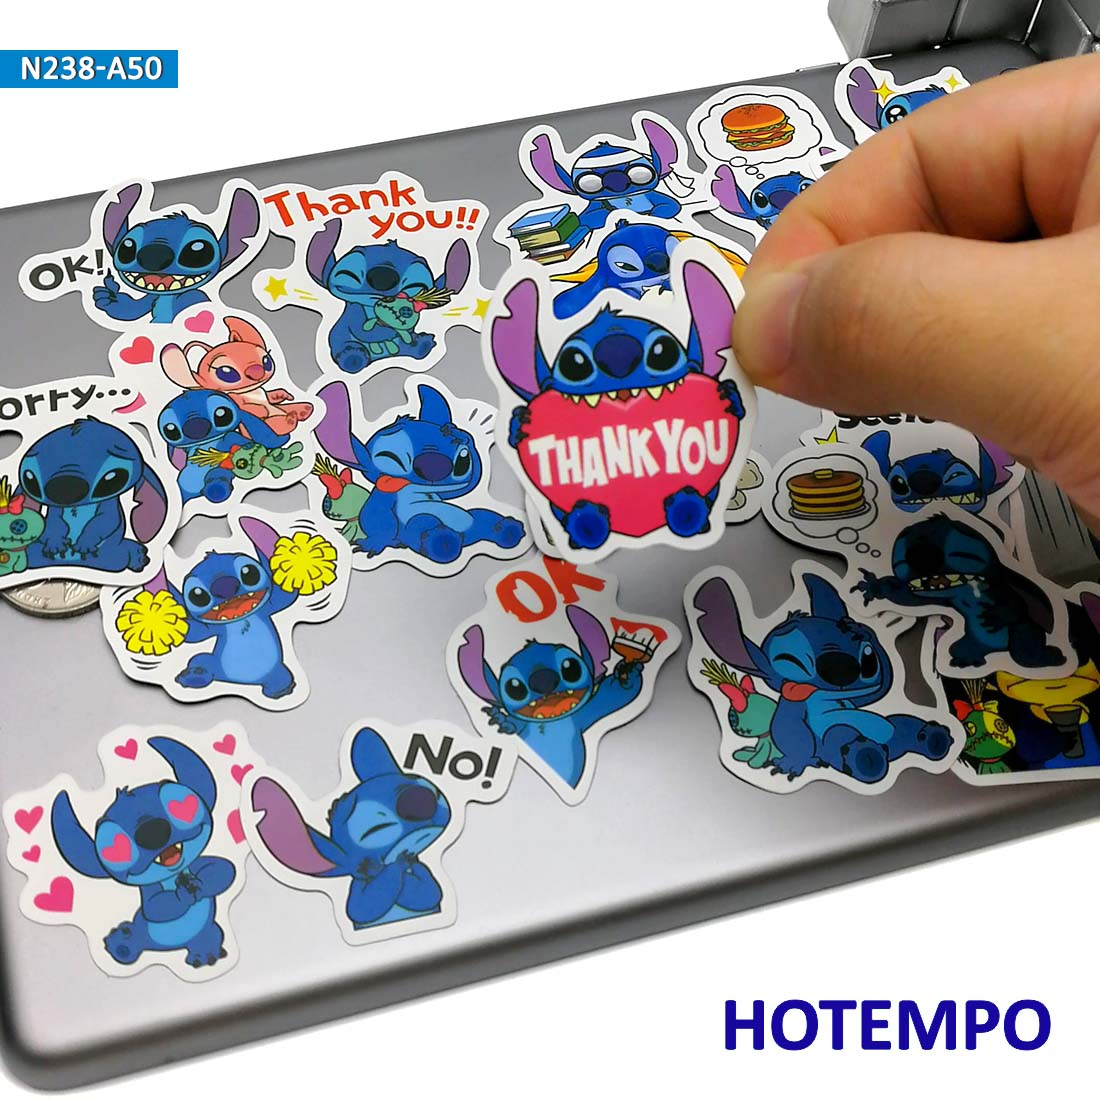 50pcs Cute Lilo Stitch Anime Stickers for Kid DIY Mobile Phone Laptop Luggage Suitcase Guitar Skateboard Bike Case PVC Stickers in Stickers from Toys Hobbies